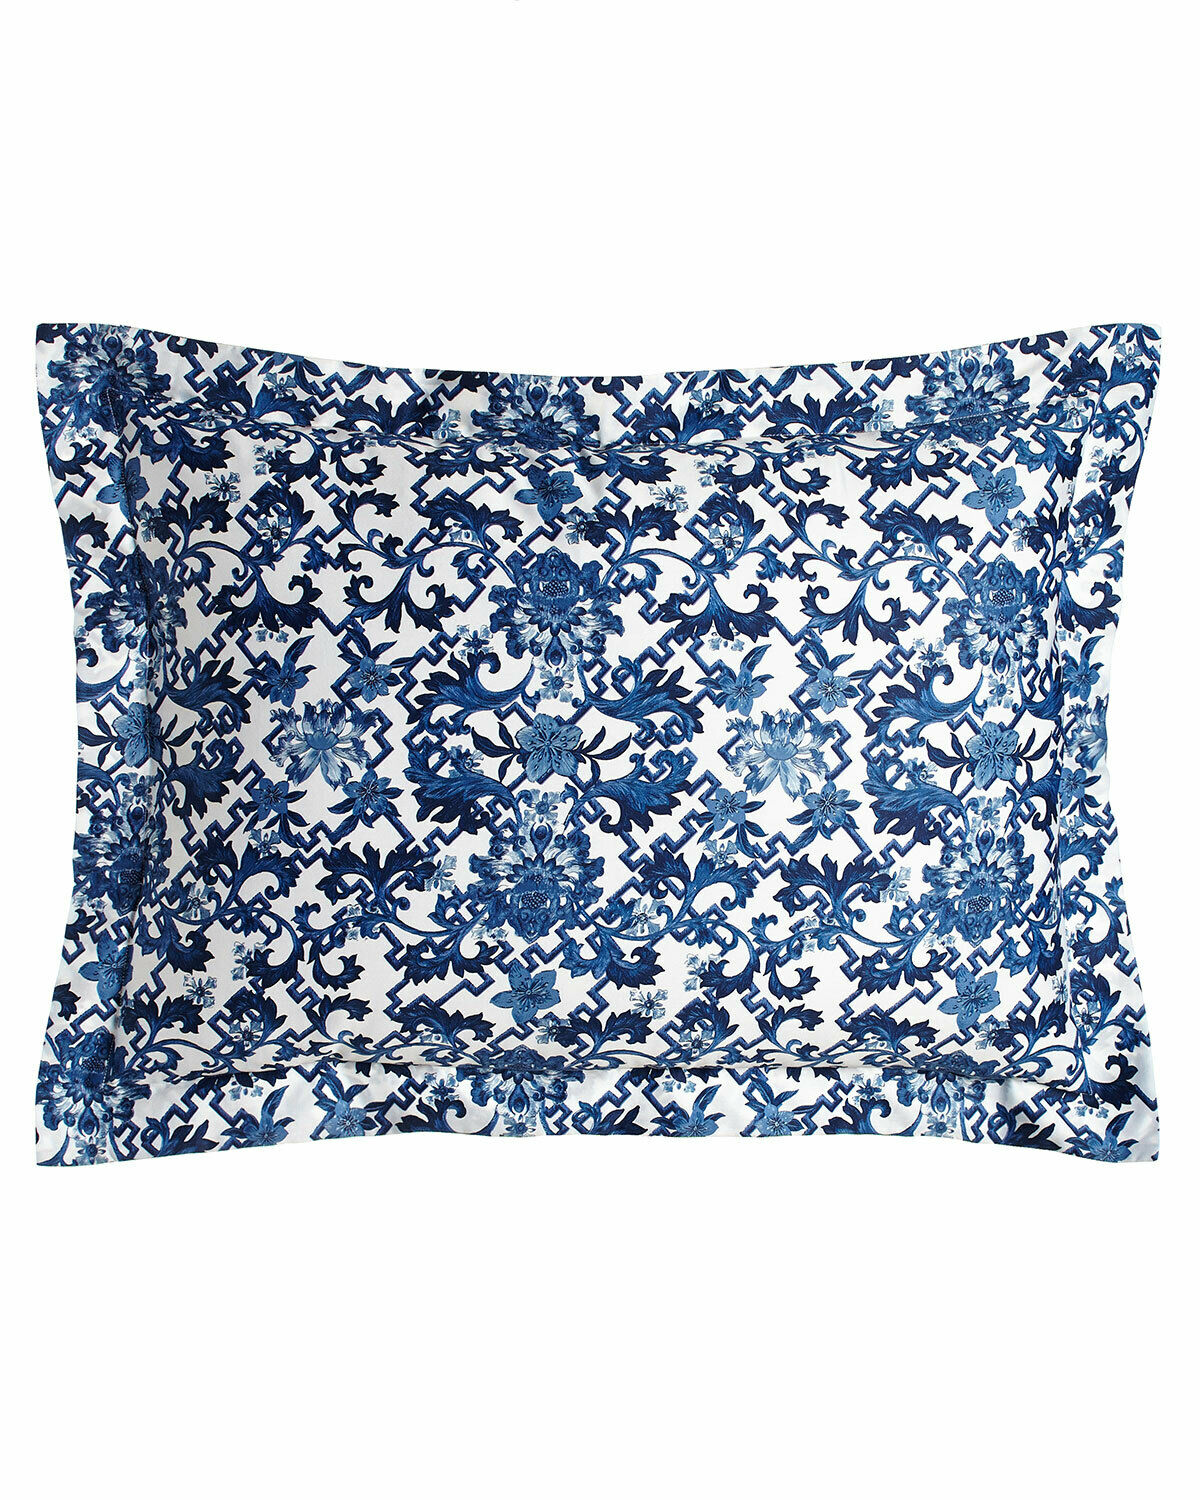 Ralph Lauren Dorsey Standard Pillow Shams White & blueee